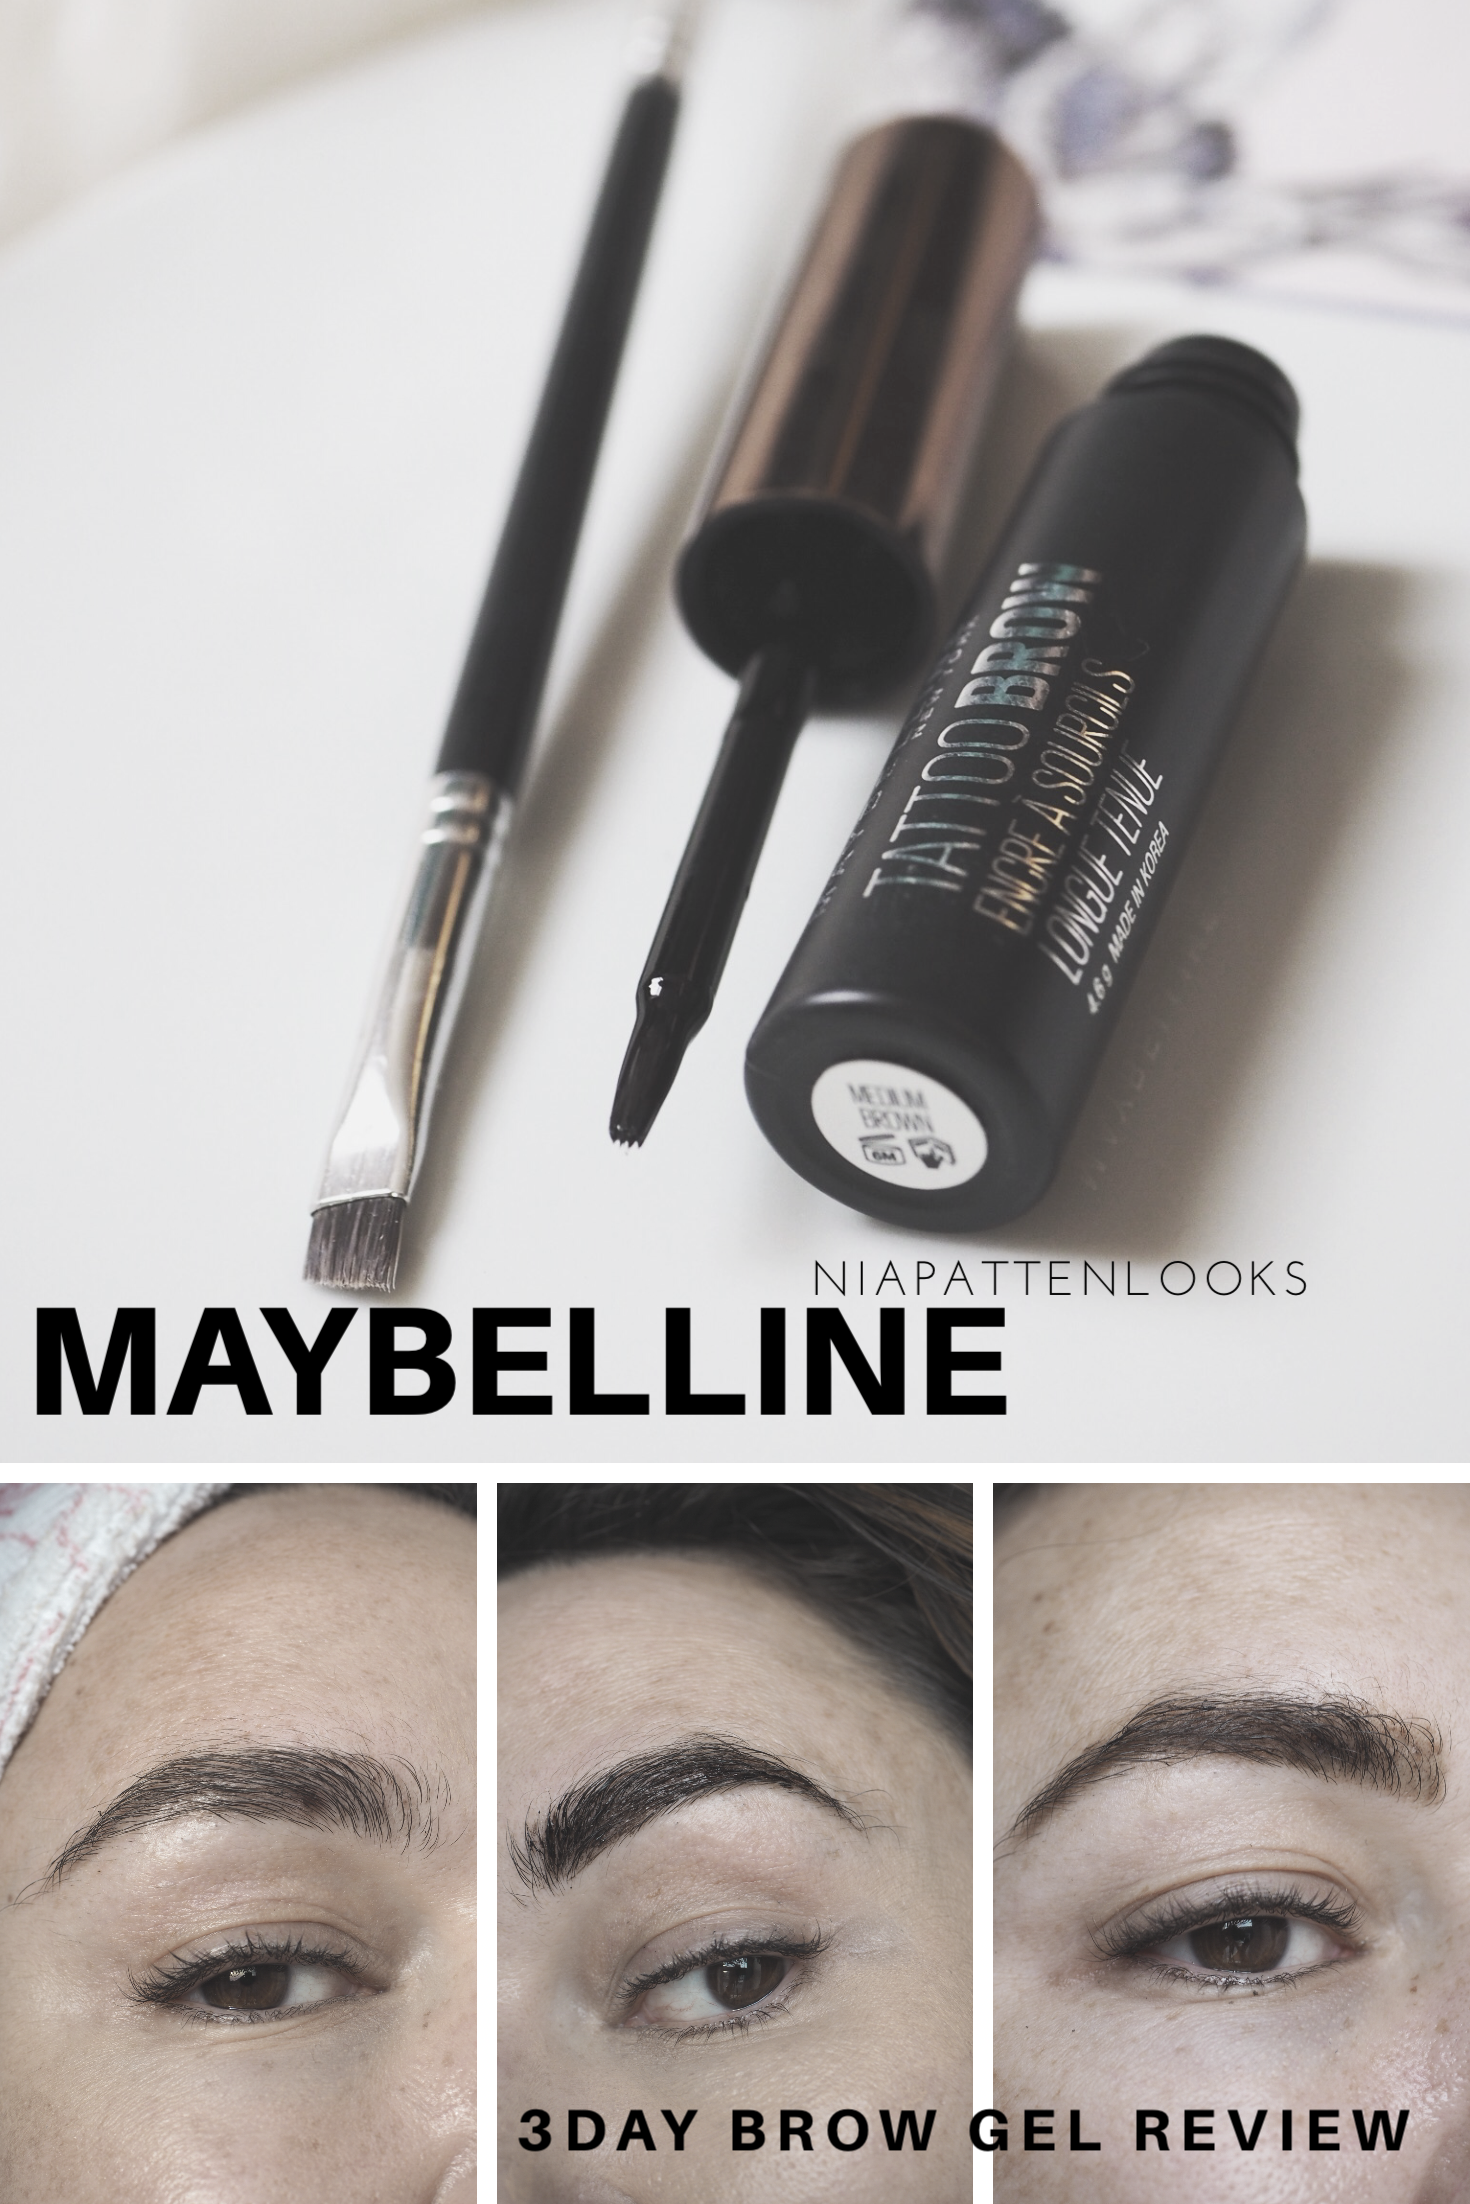 NiaPattenLooks Maybelline tattoo, Maybelline brows, Brow